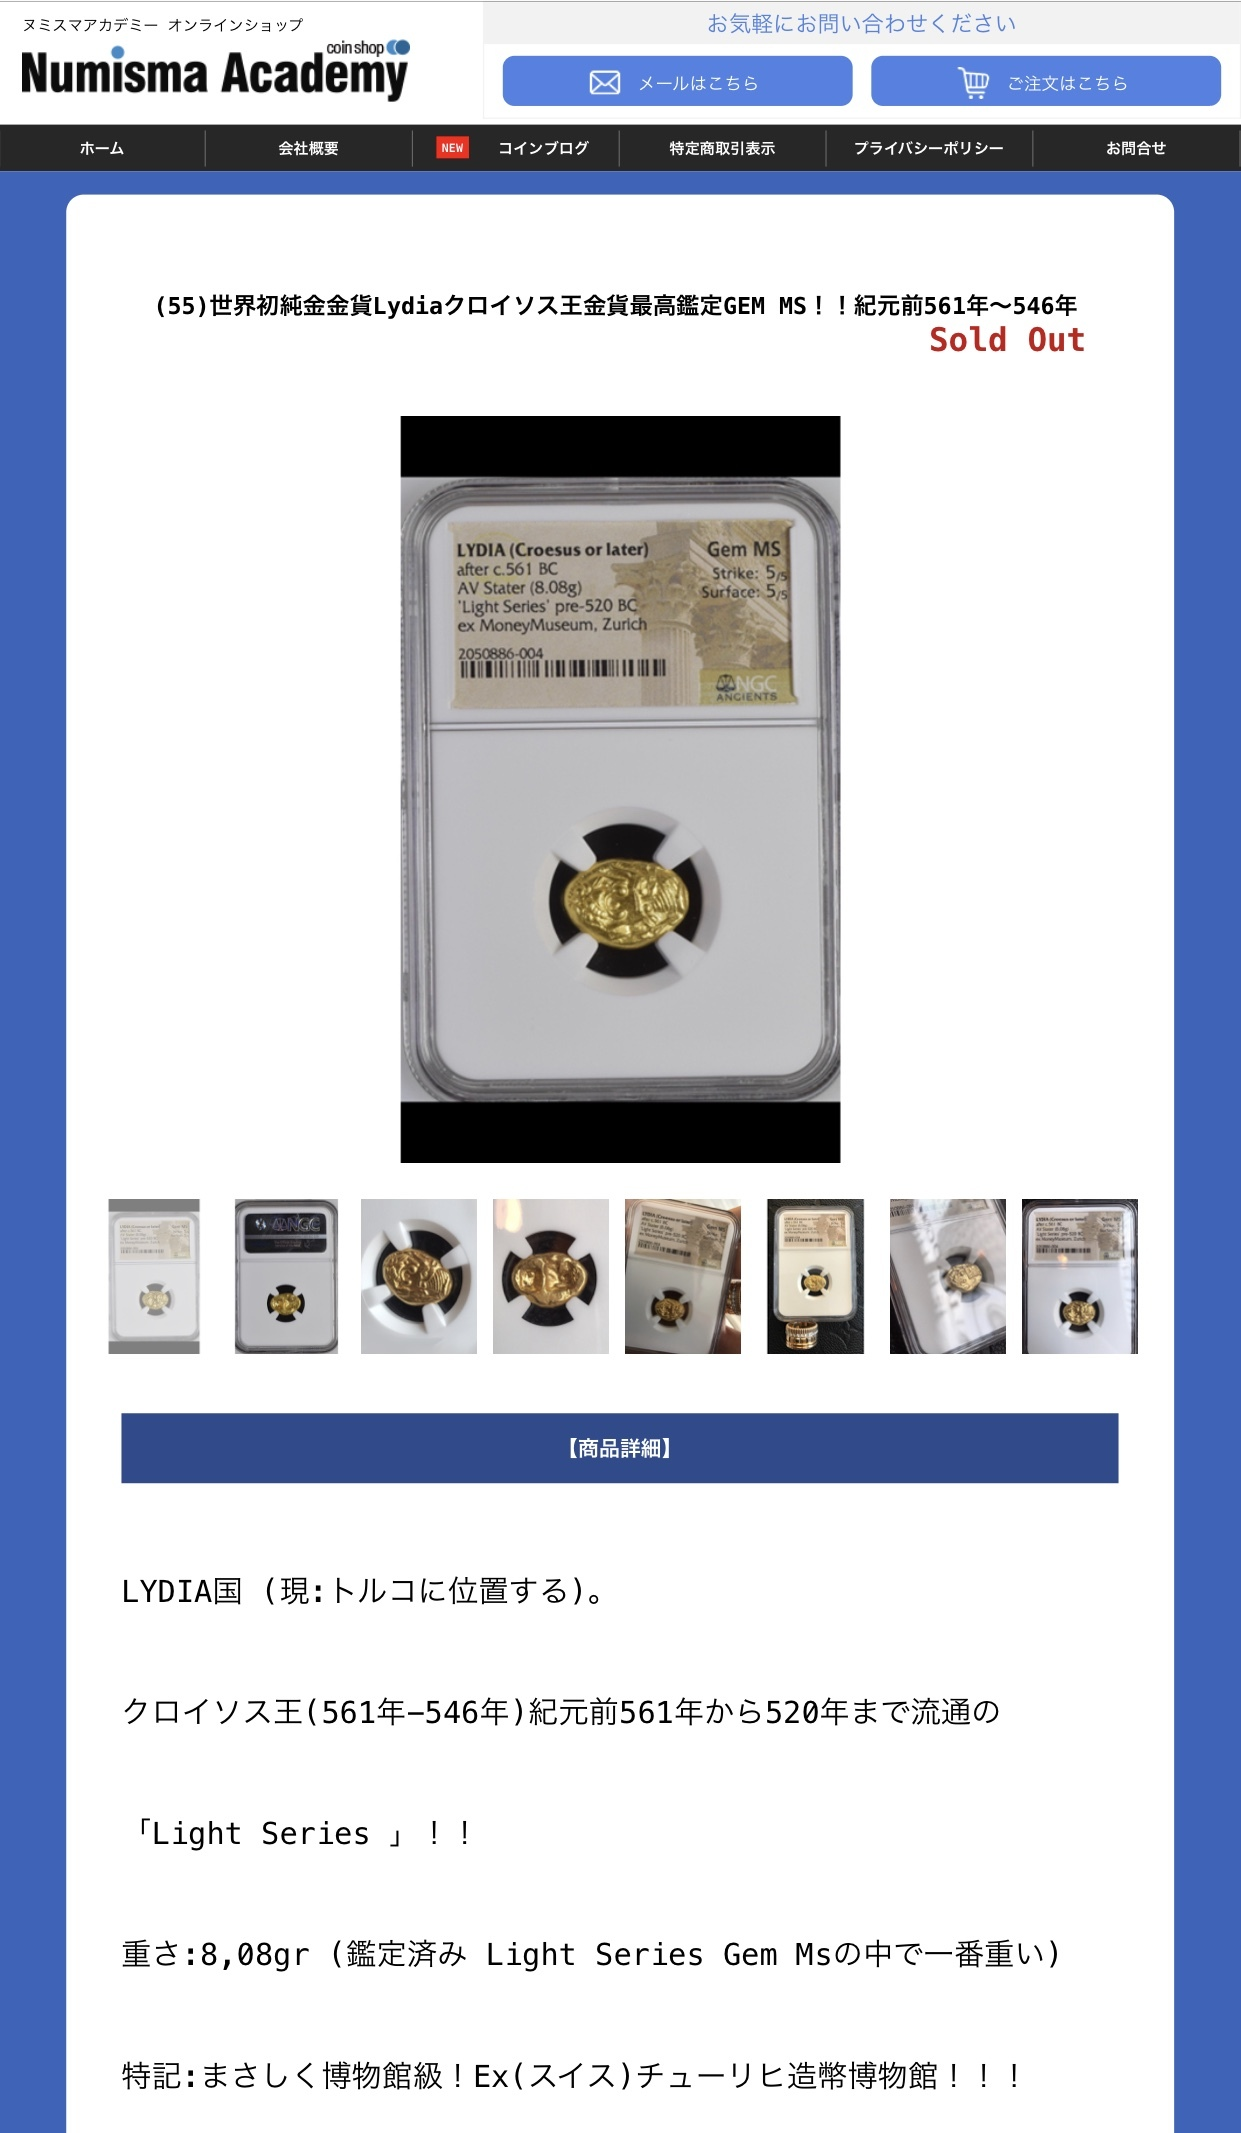 One My ex-GEM MS 世界初の金貨Heavy/Light再び。。。_d0357629_08164332.jpeg